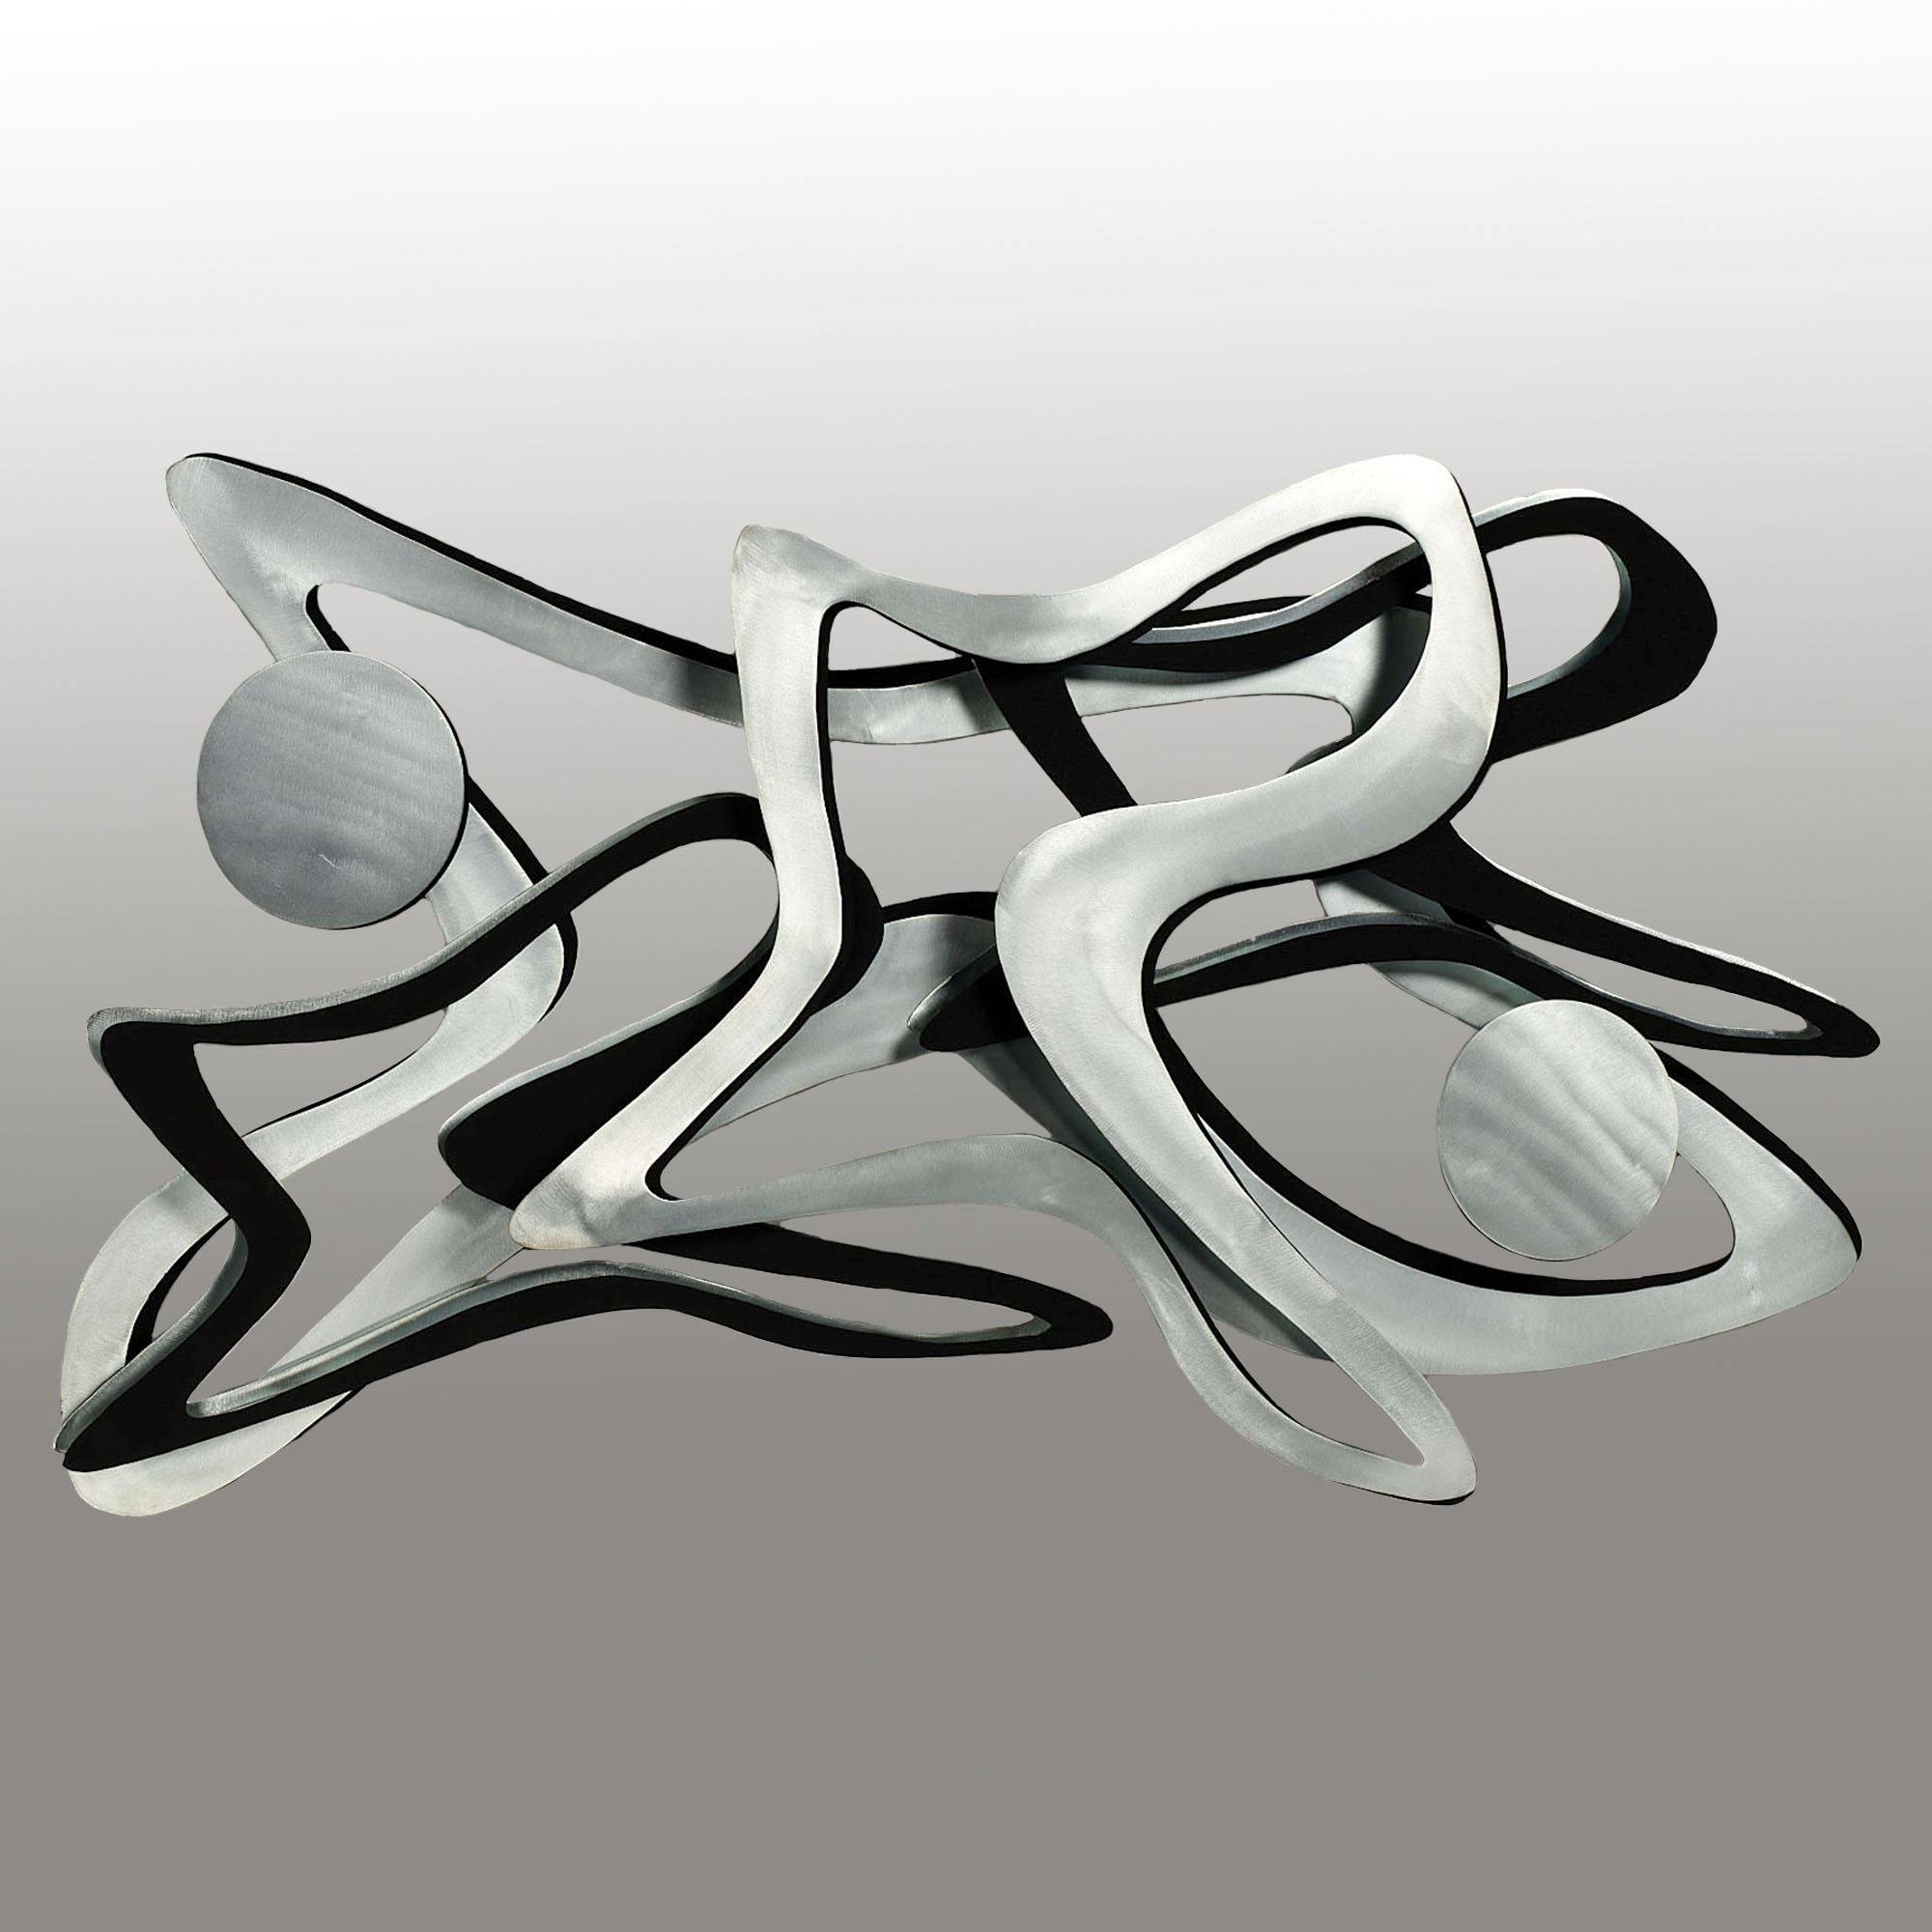 Rave Metal Wall Sculpture For Recent Contemporary Metal Wall Art Sculptures (View 17 of 20)